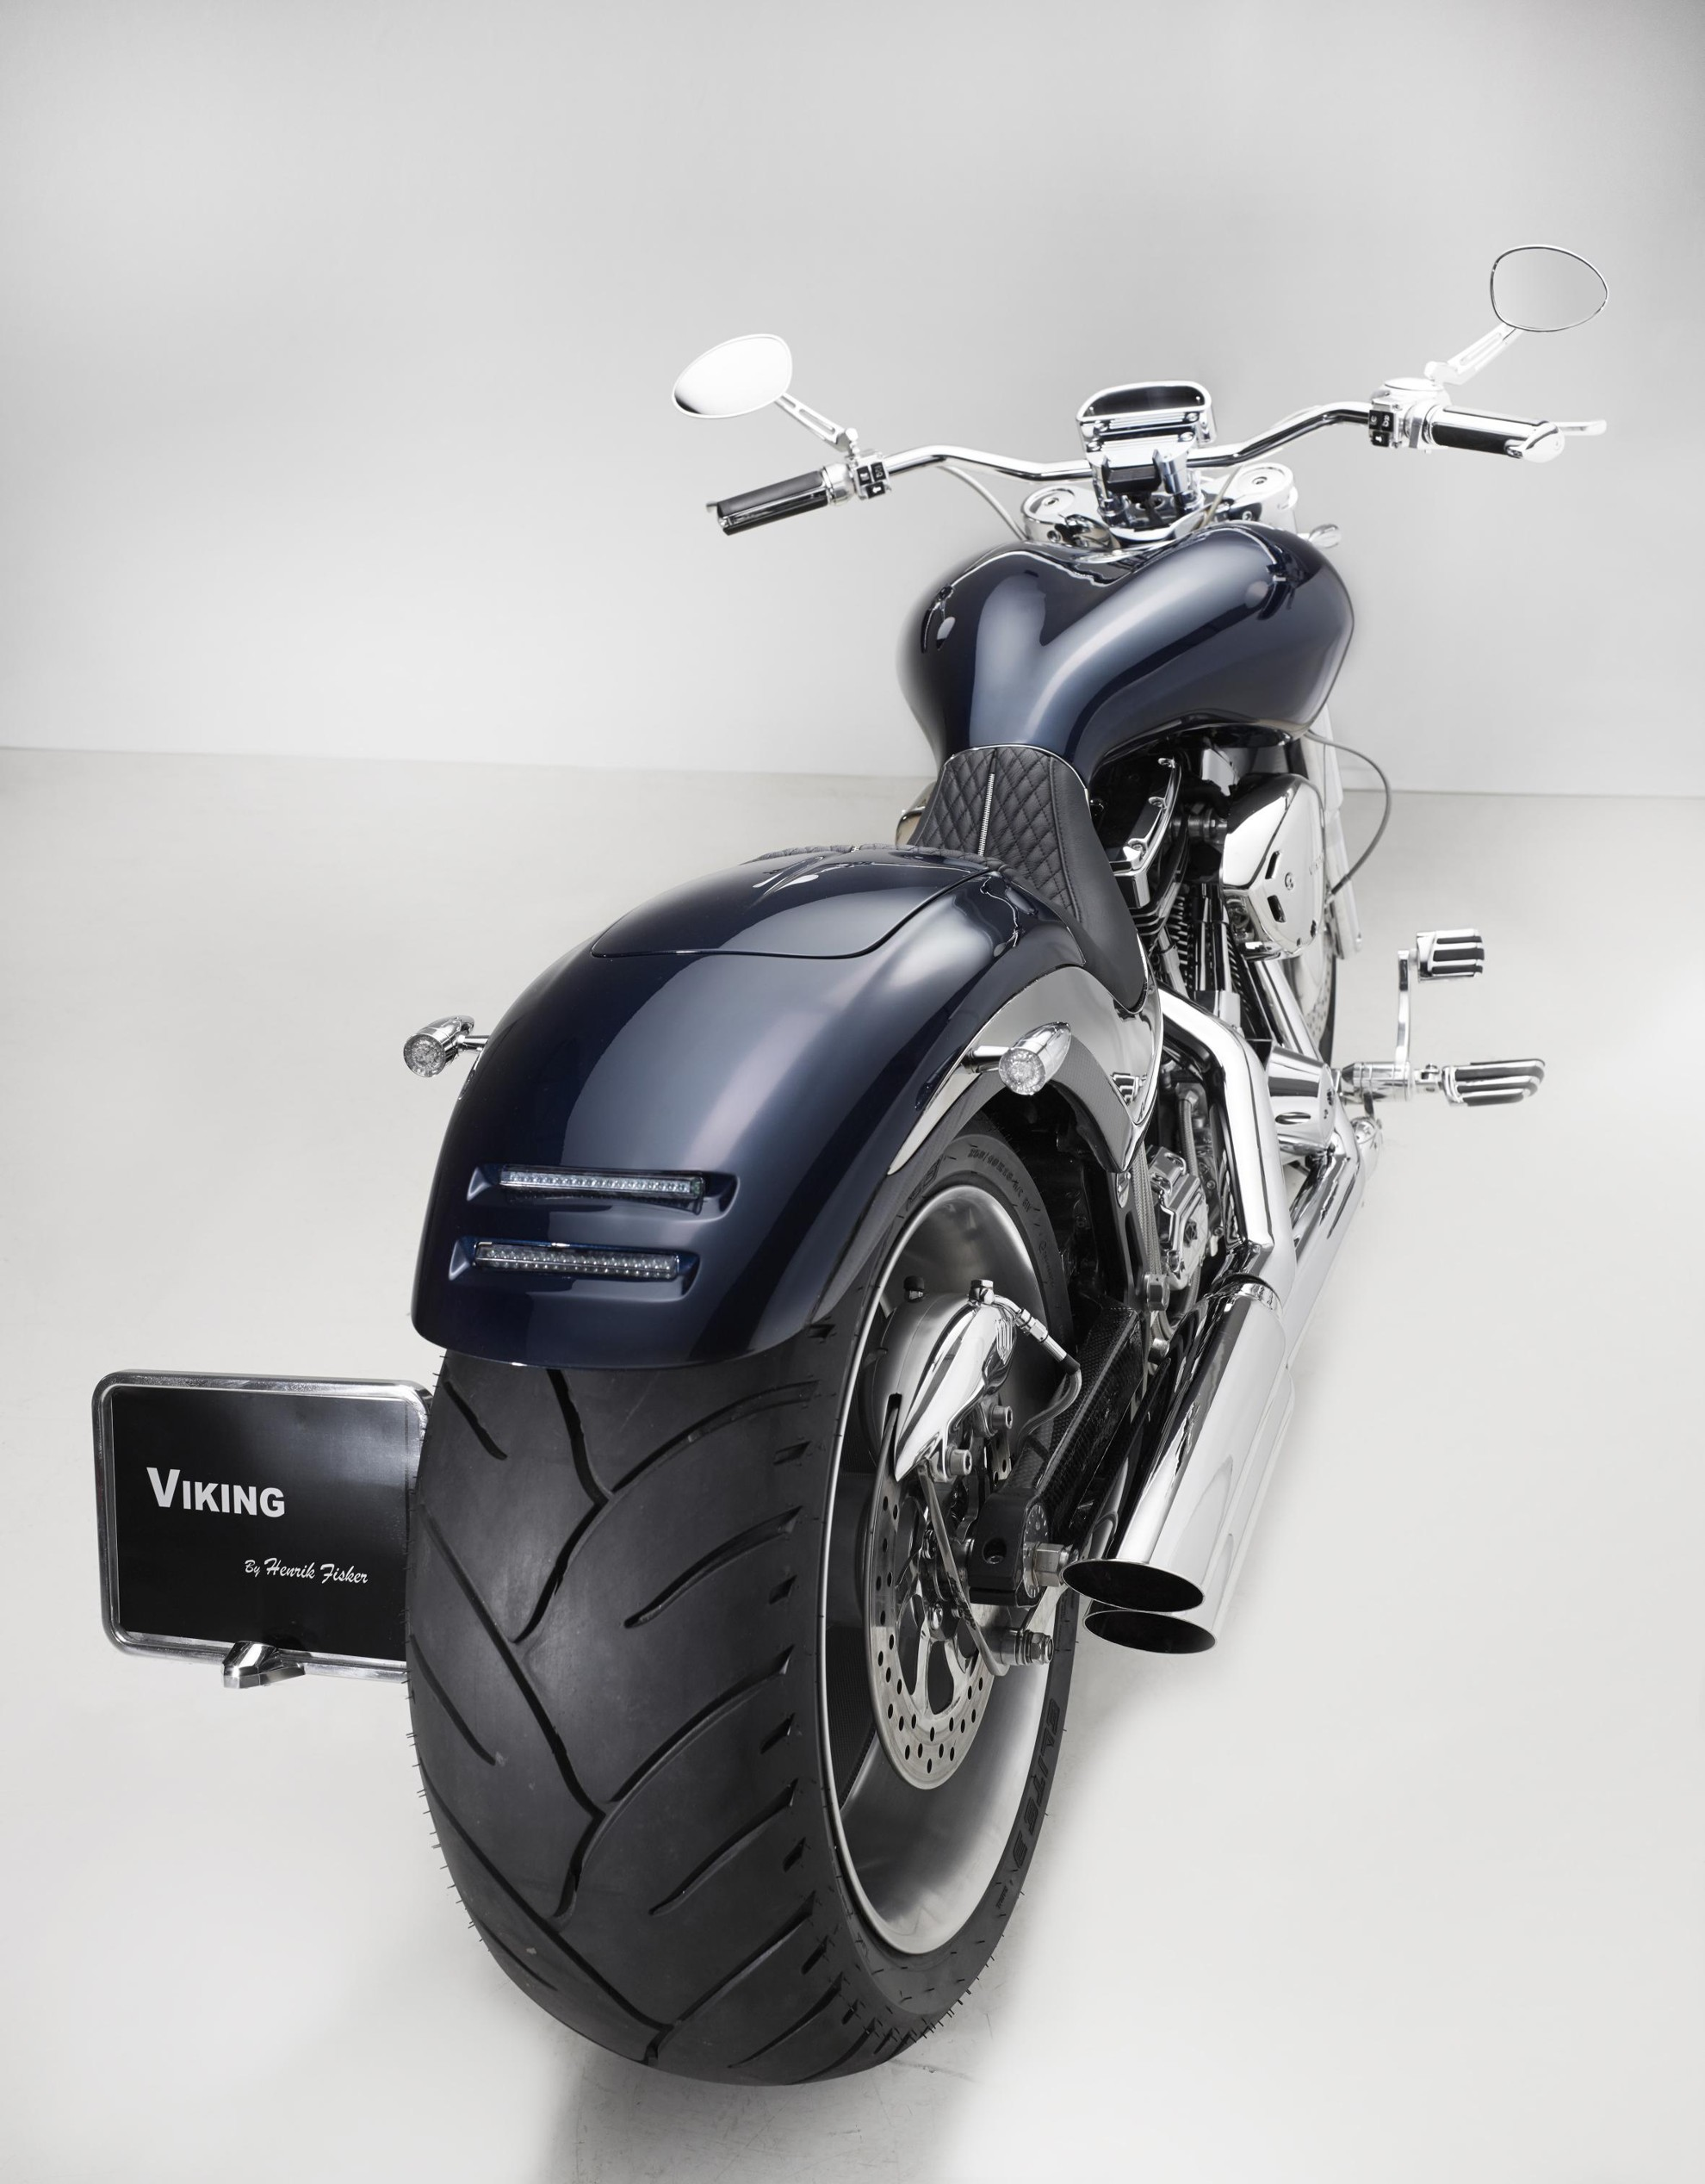 Lauge_Jensen_Viking_Motorcycle